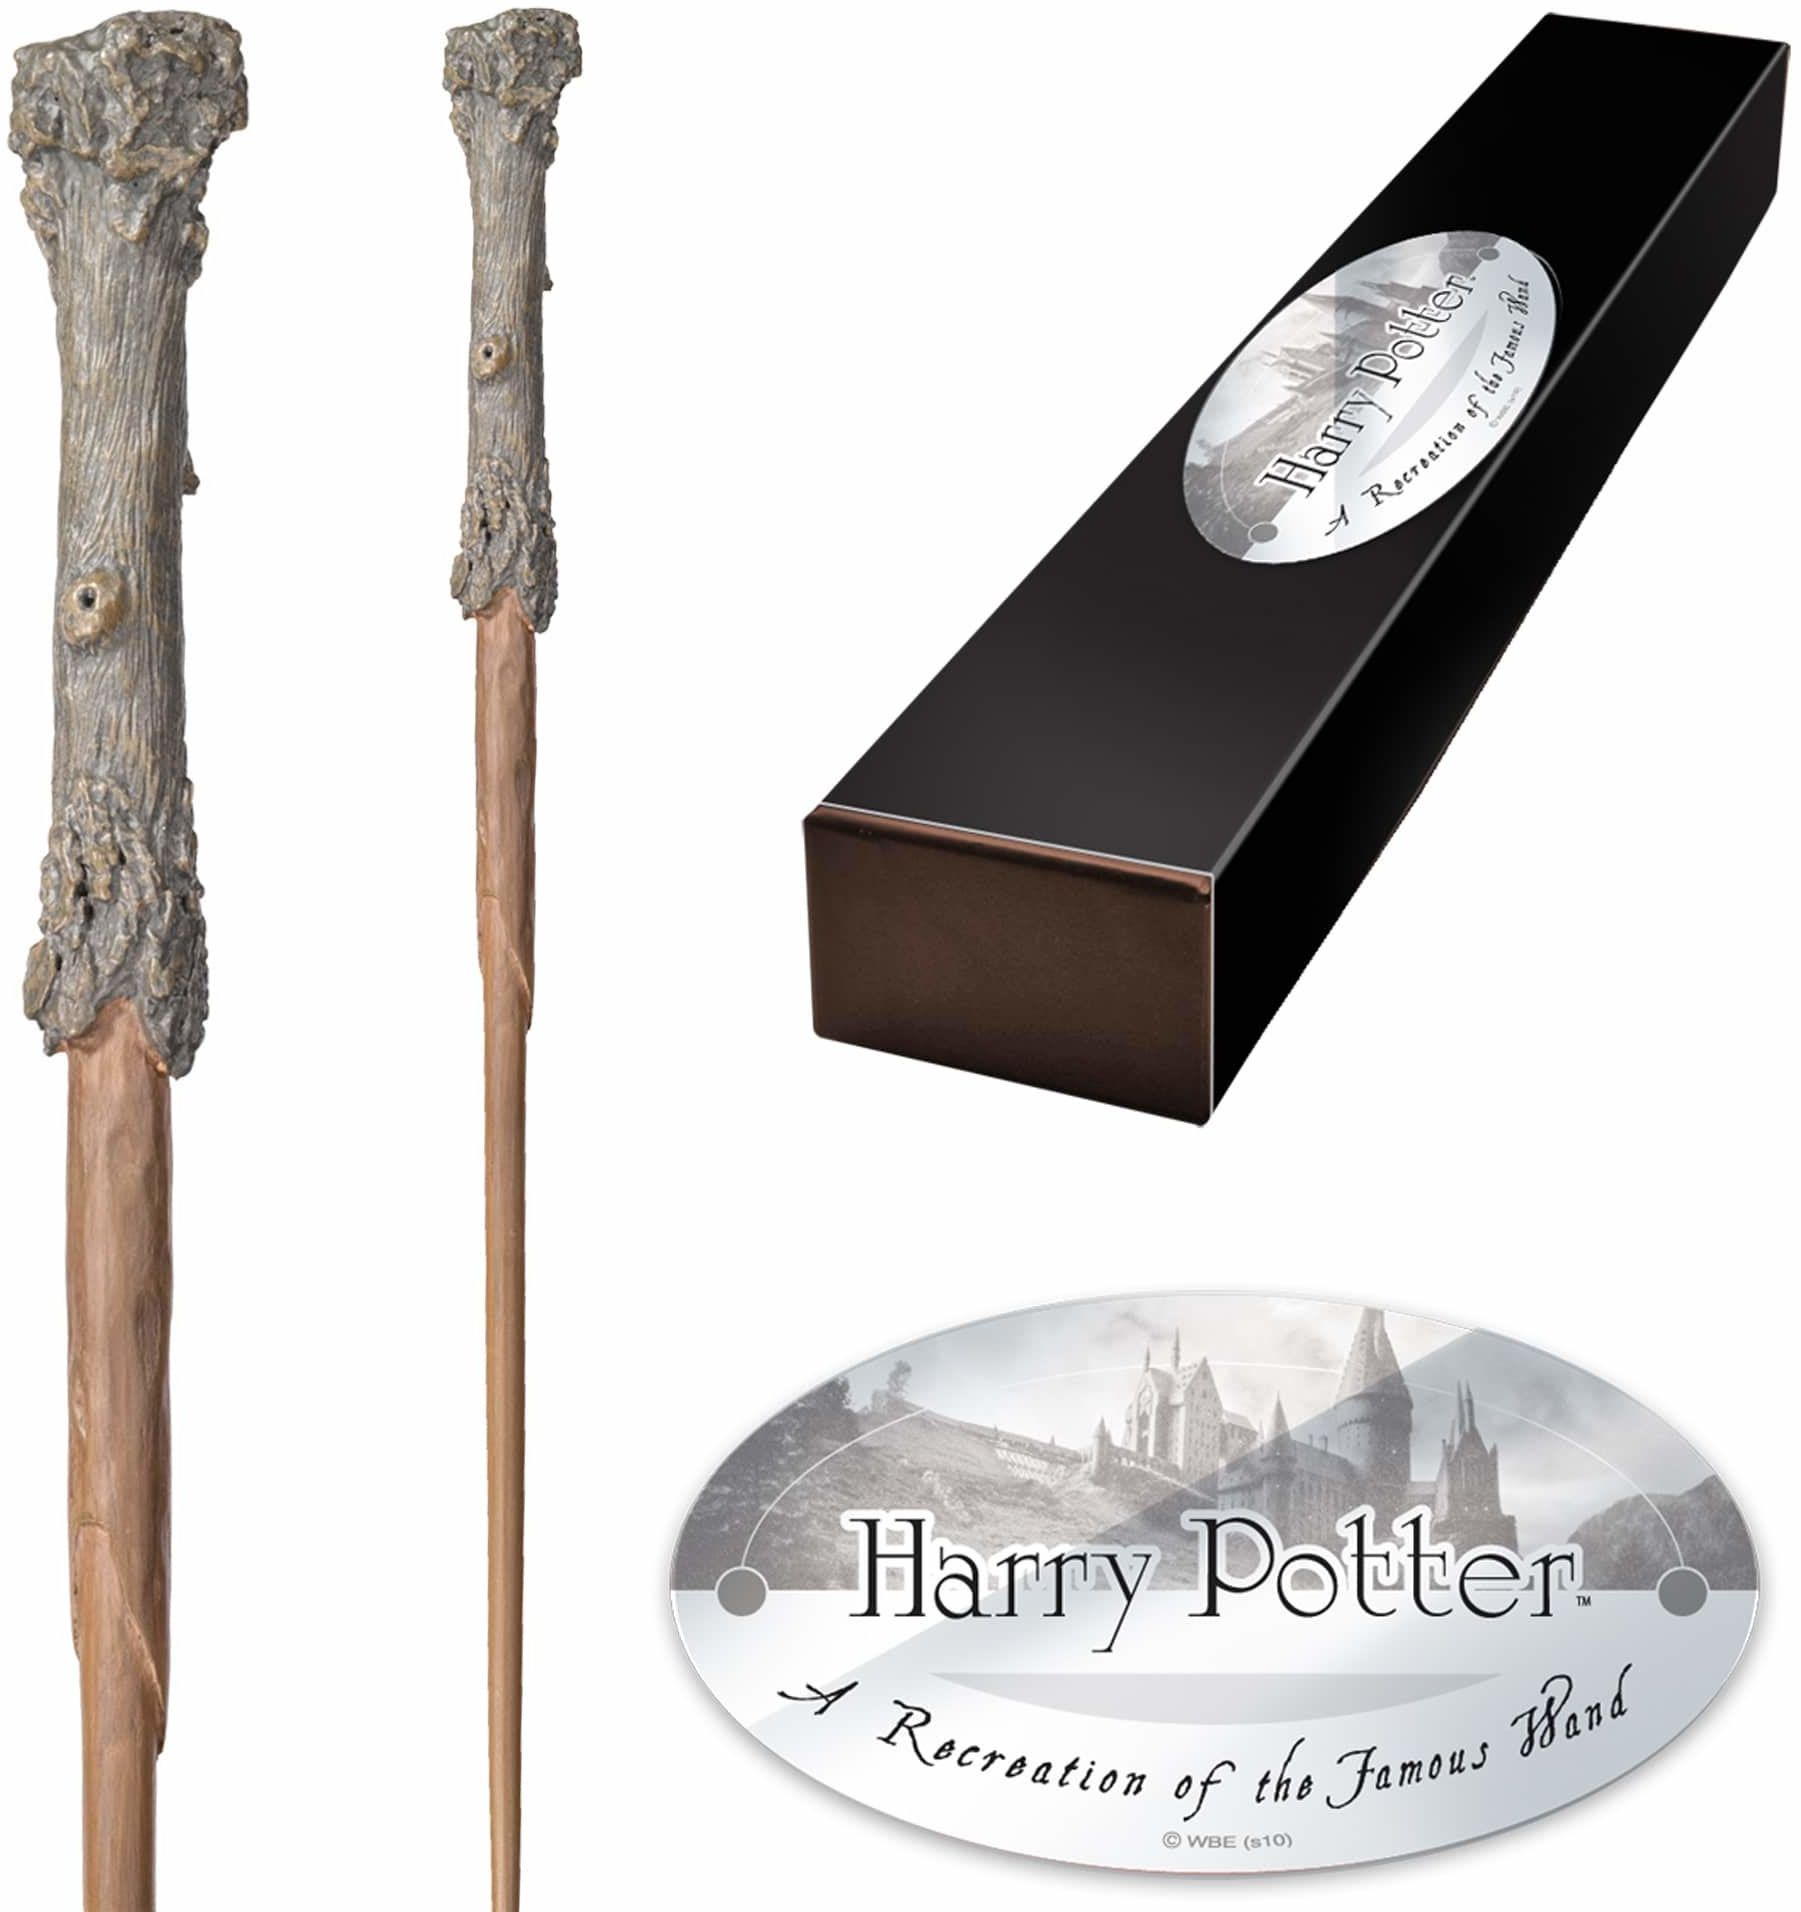 The Noble Collection - Harry Potter Character Wand - 14in (35.5cm) High Quality Harry Potter Wand With Name Tag - Harry Potter Film Set Movie Props Wands